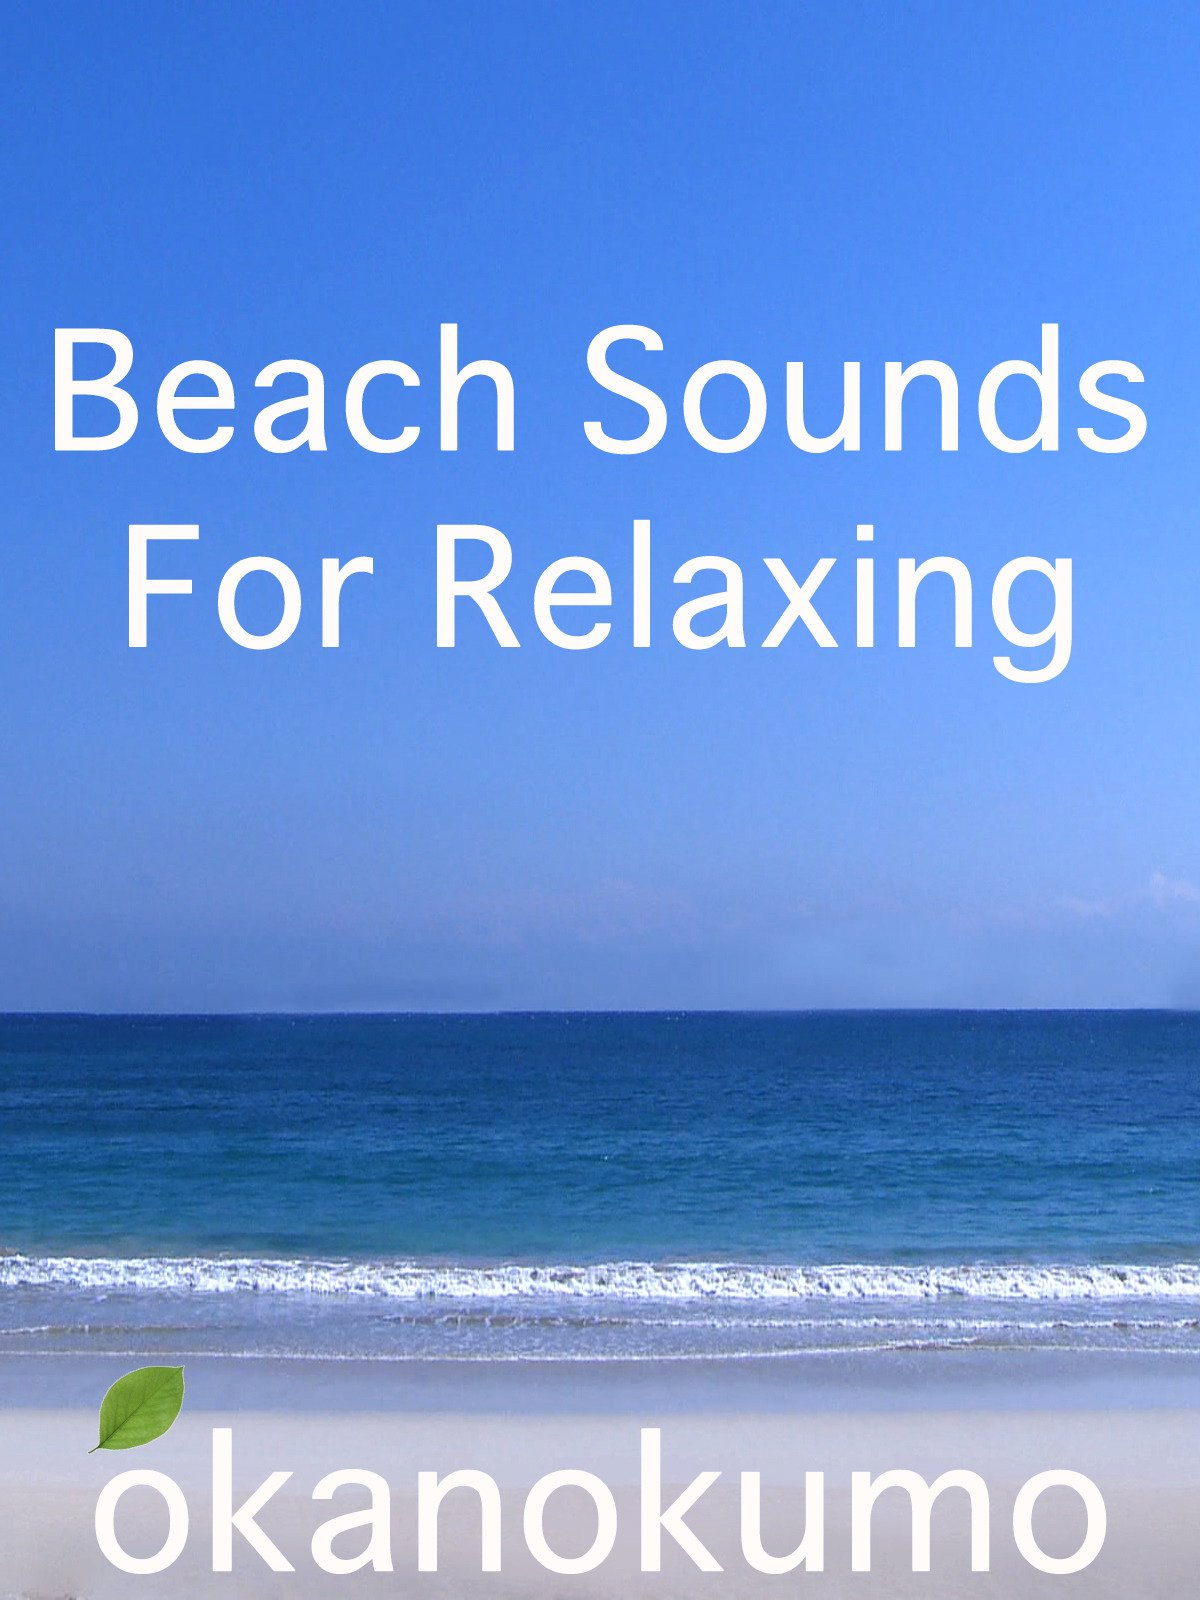 Beach sounds for relaxing